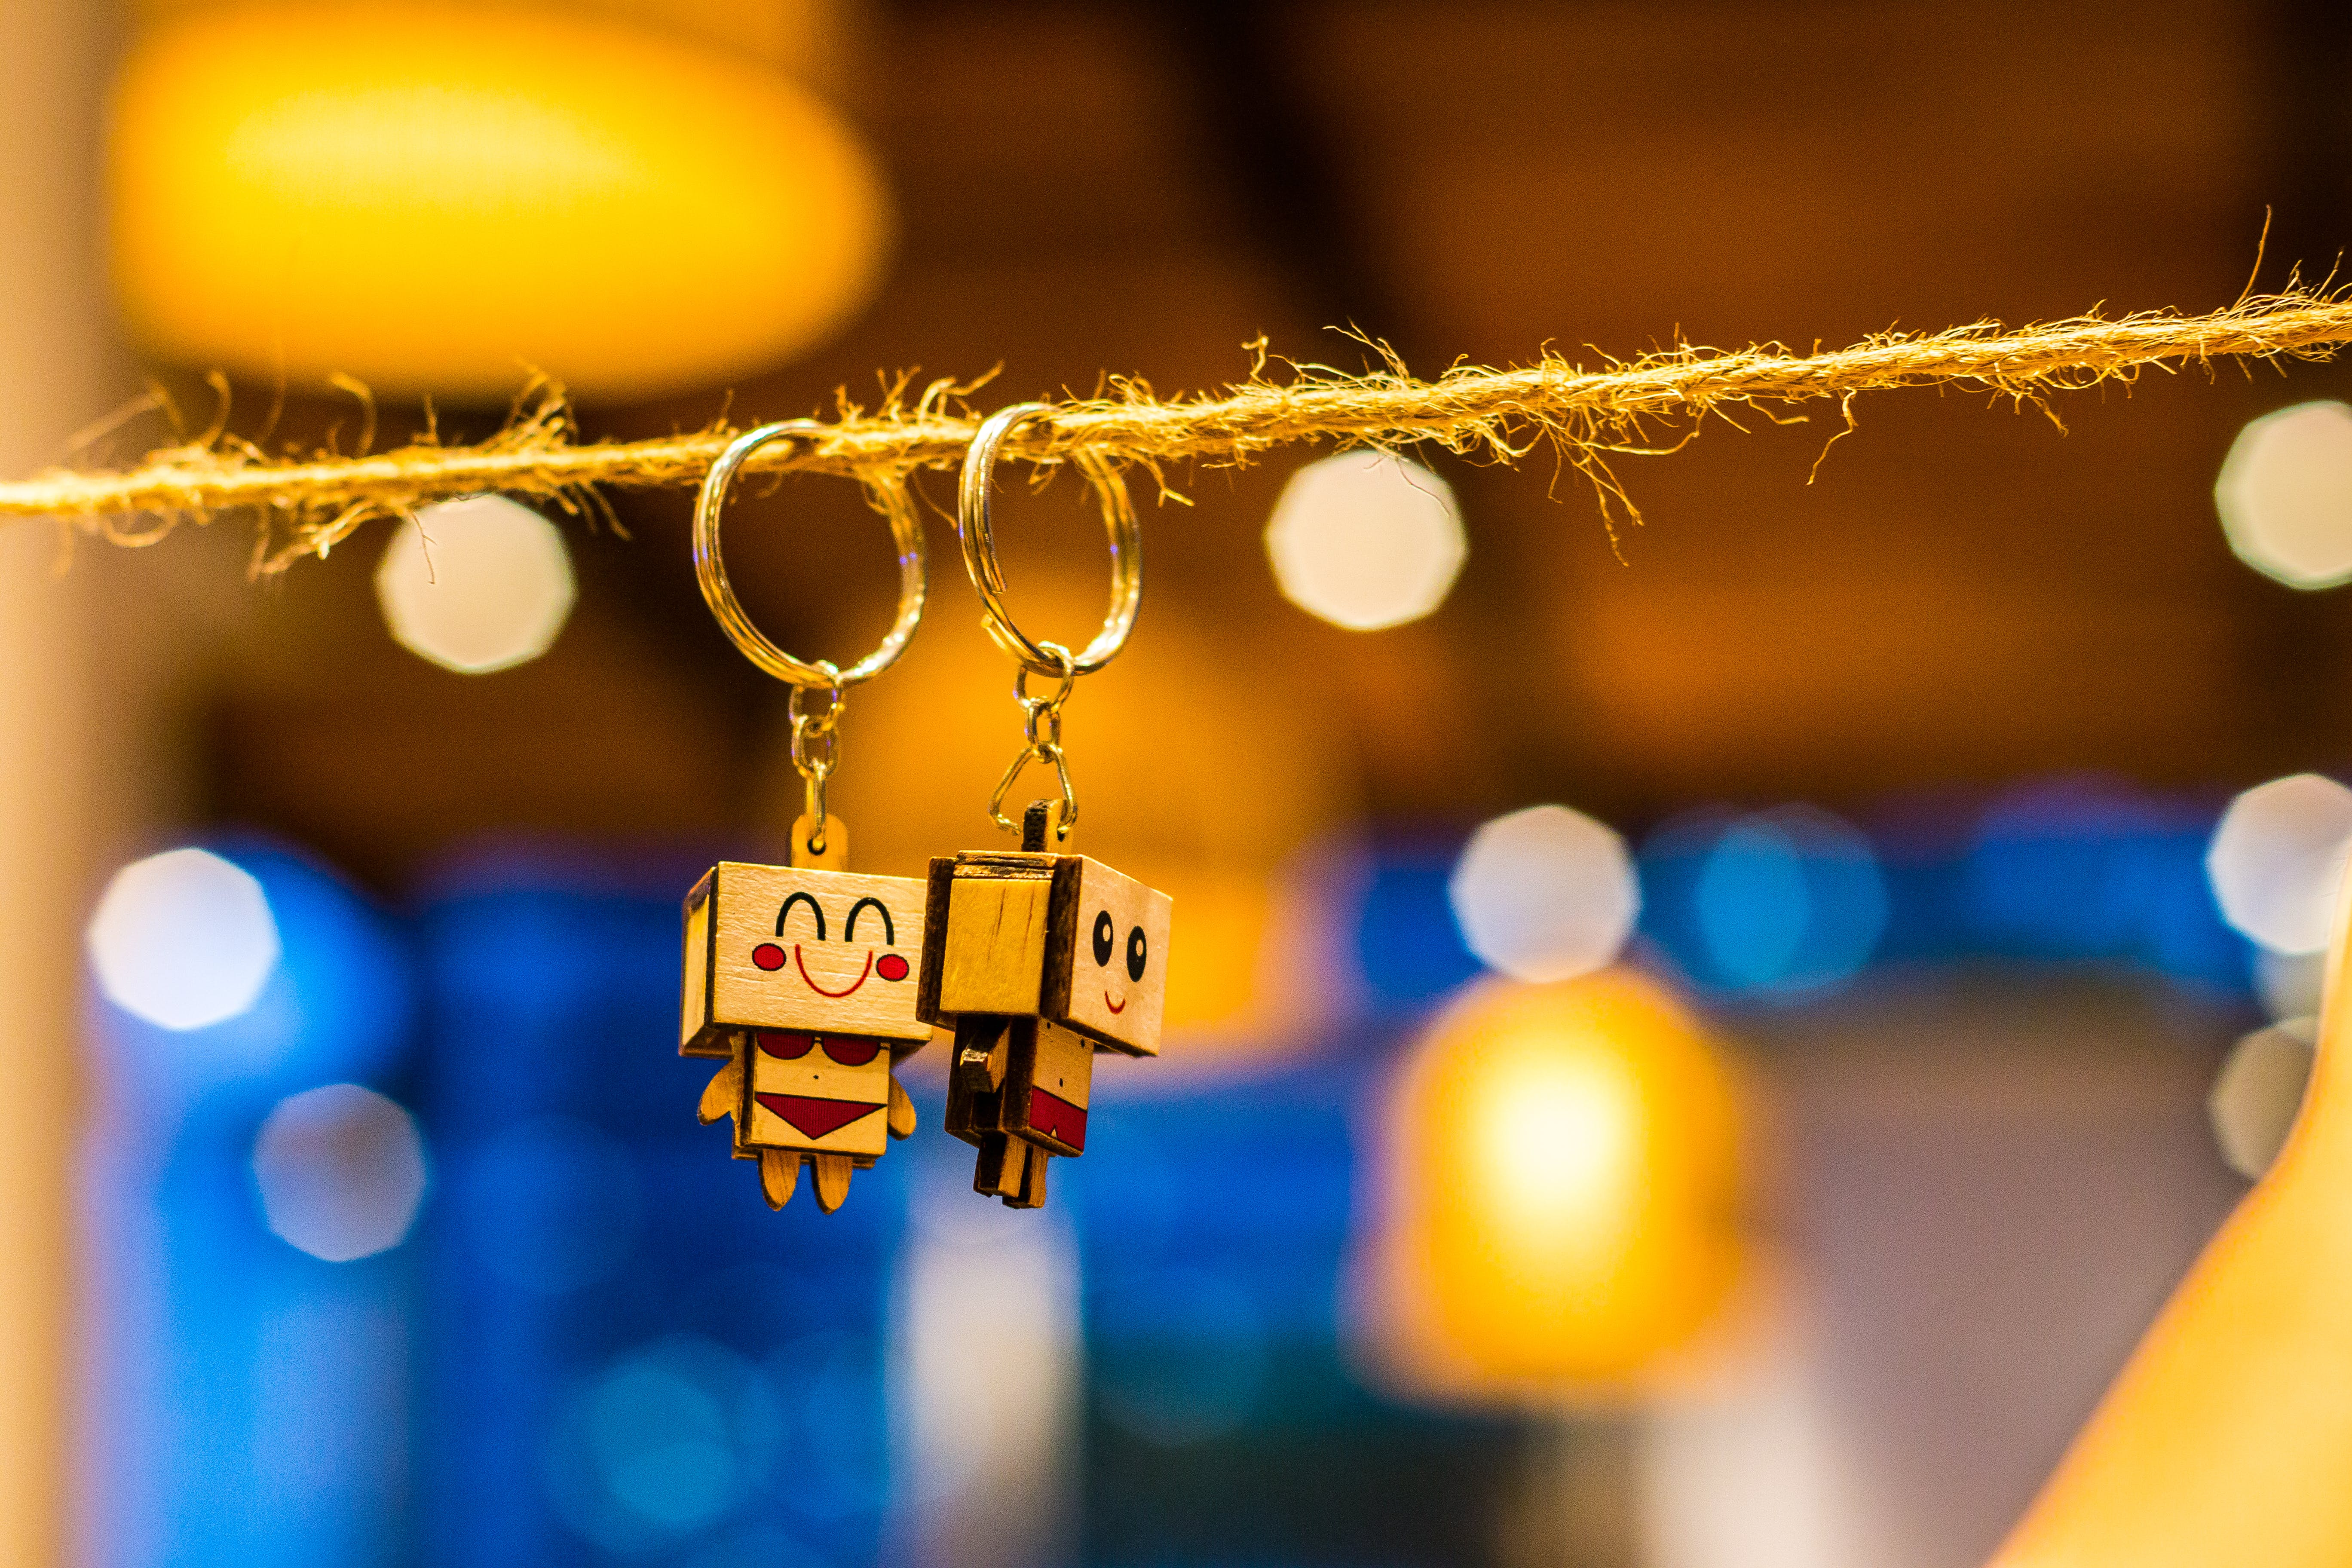 Shallow Focus Photography of Keychains